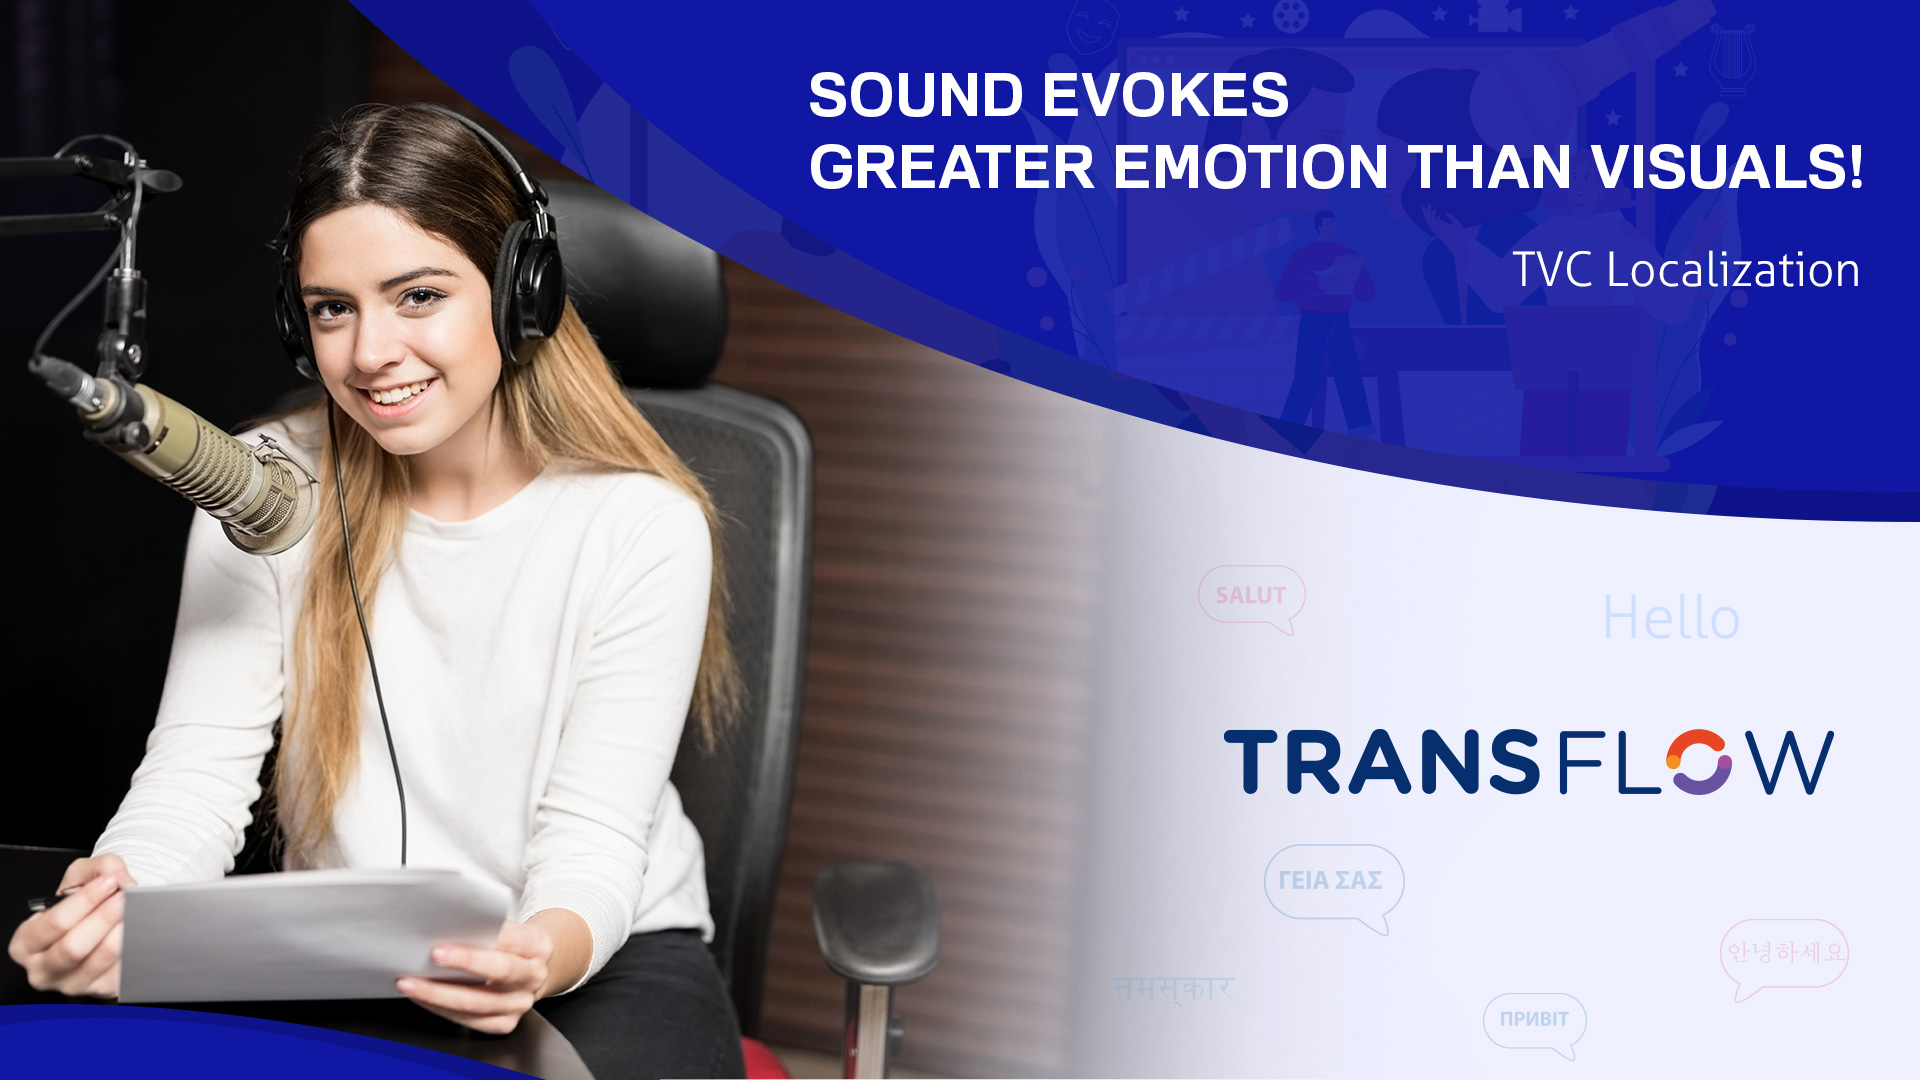 Sound Evokes Greater Emotion than Visuals